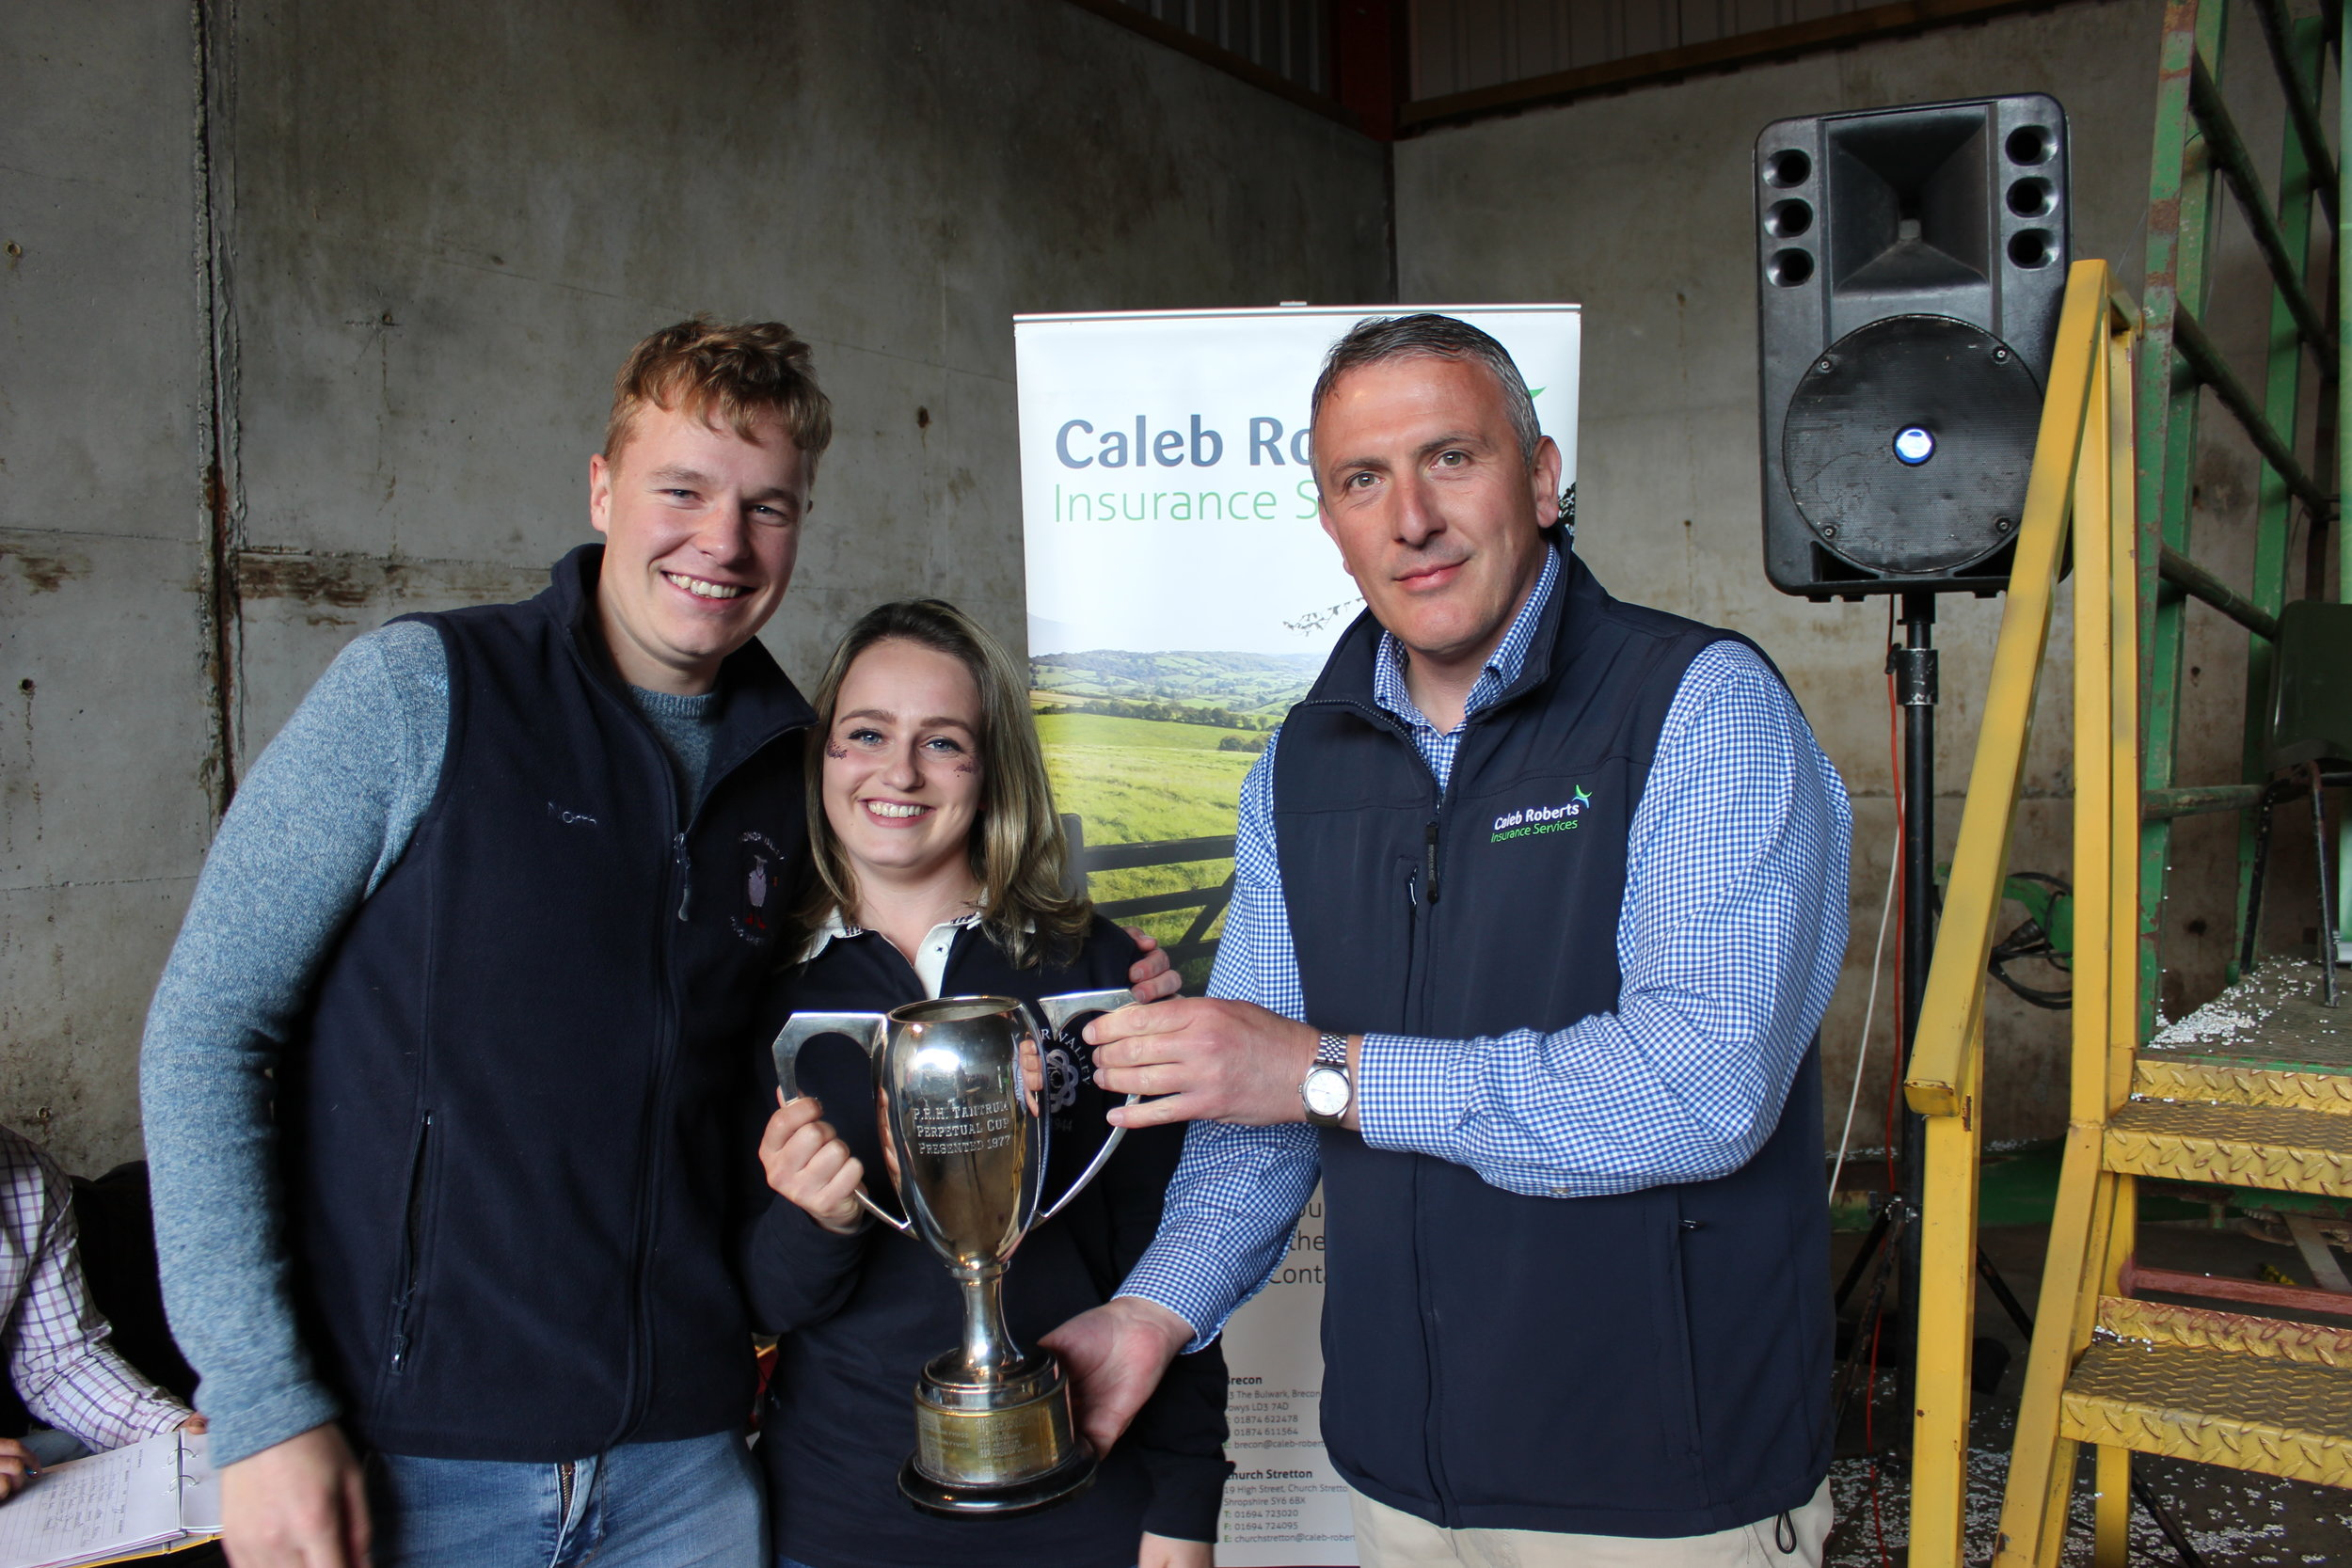 Elliot Morris & Lauren Morris, Radnor Valley YFC - The PRH Tantrum Cup for A Twist On A Nursery Rhyme & Promotional Video Clip being presented by Hugh Campbell, Caleb Roberts.